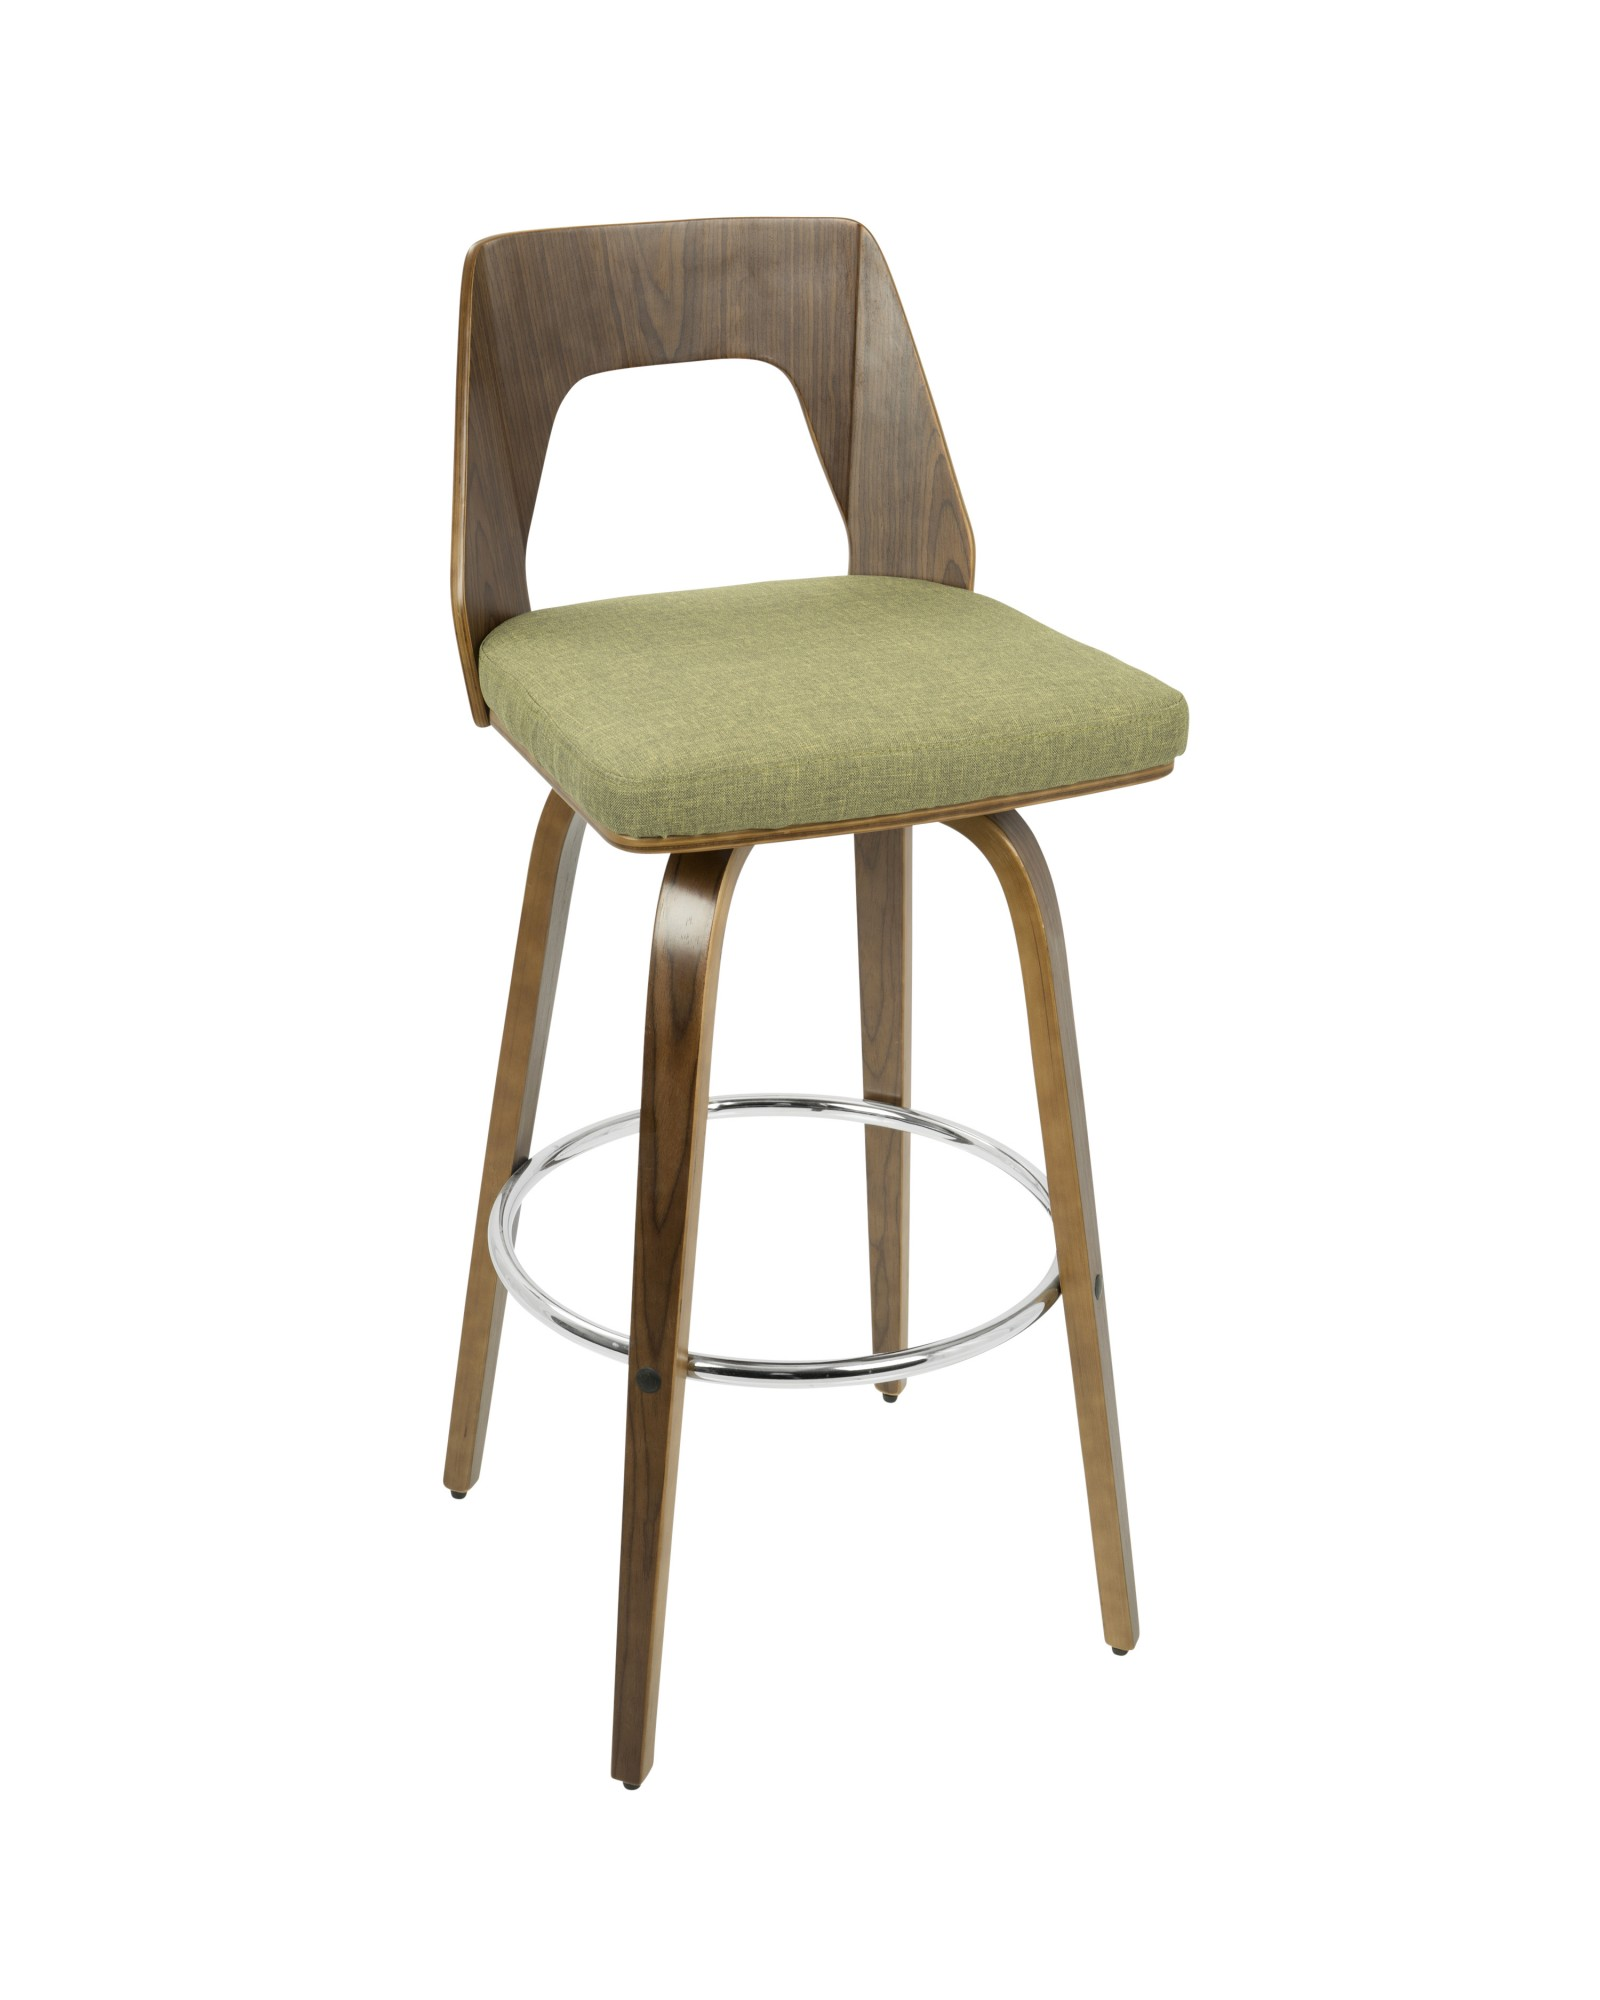 Trilogy Mid-Century Modern Barstool in Walnut and Green Fabric